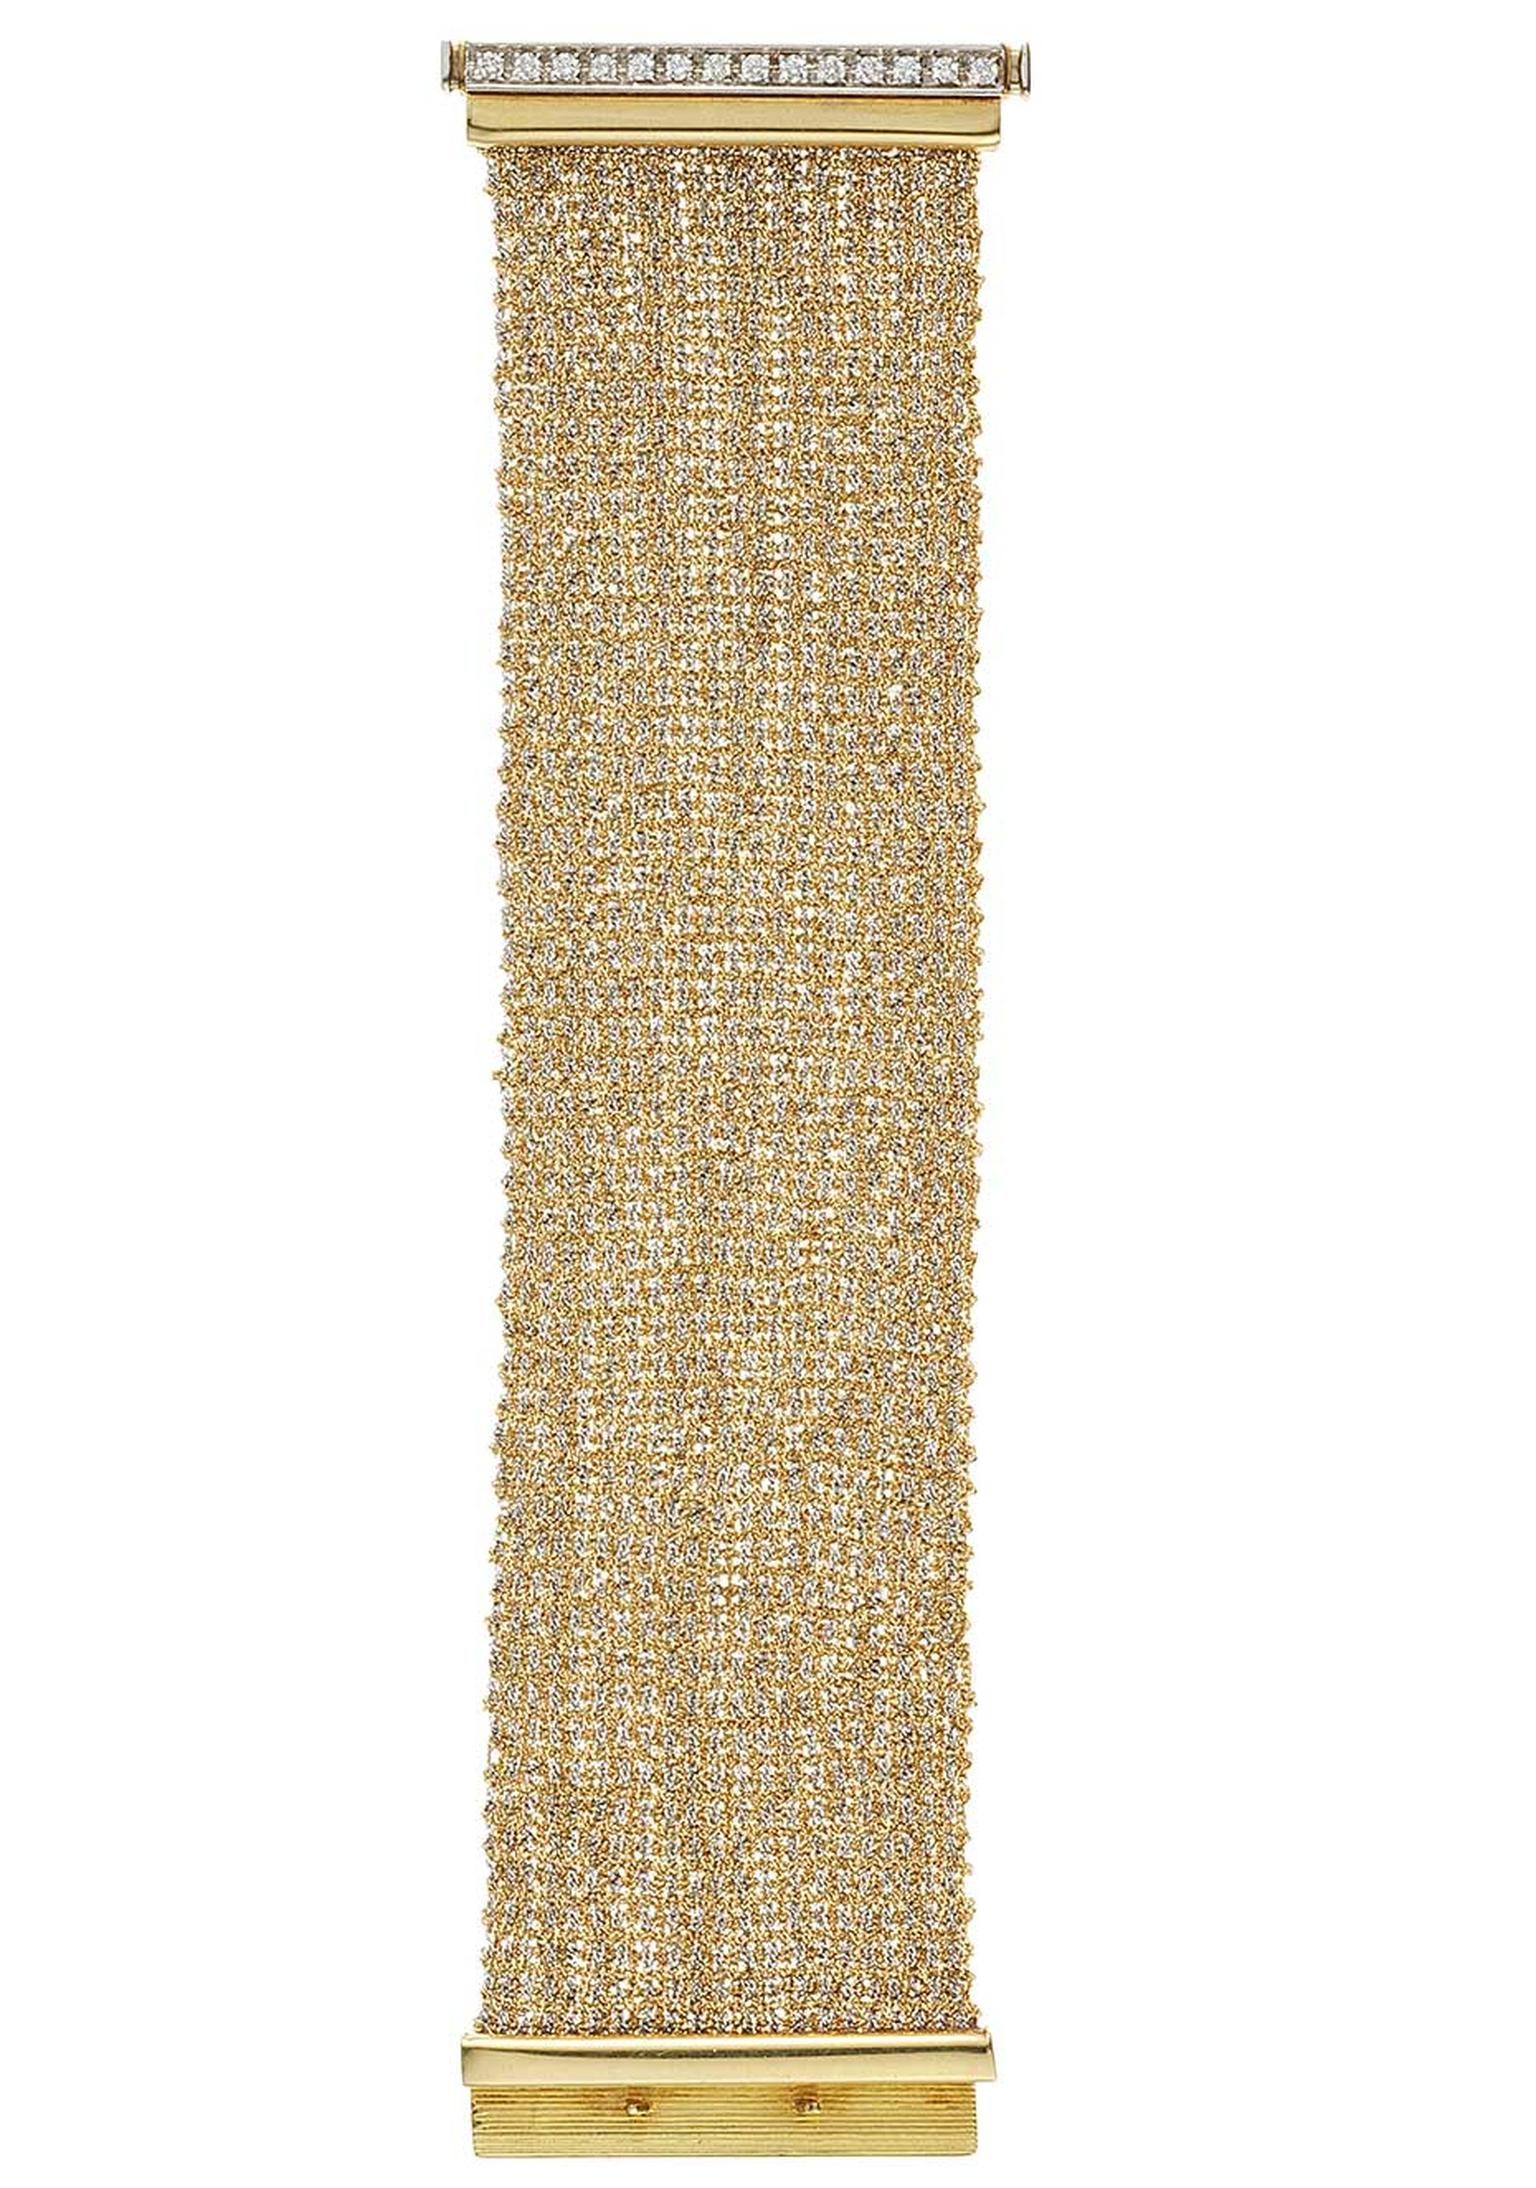 The woven gold Carolina Bucci bracelet was created using centuries-old weaving looms, resulting in incredibly supple woven gold, accentuated with diamonds (£8,815).